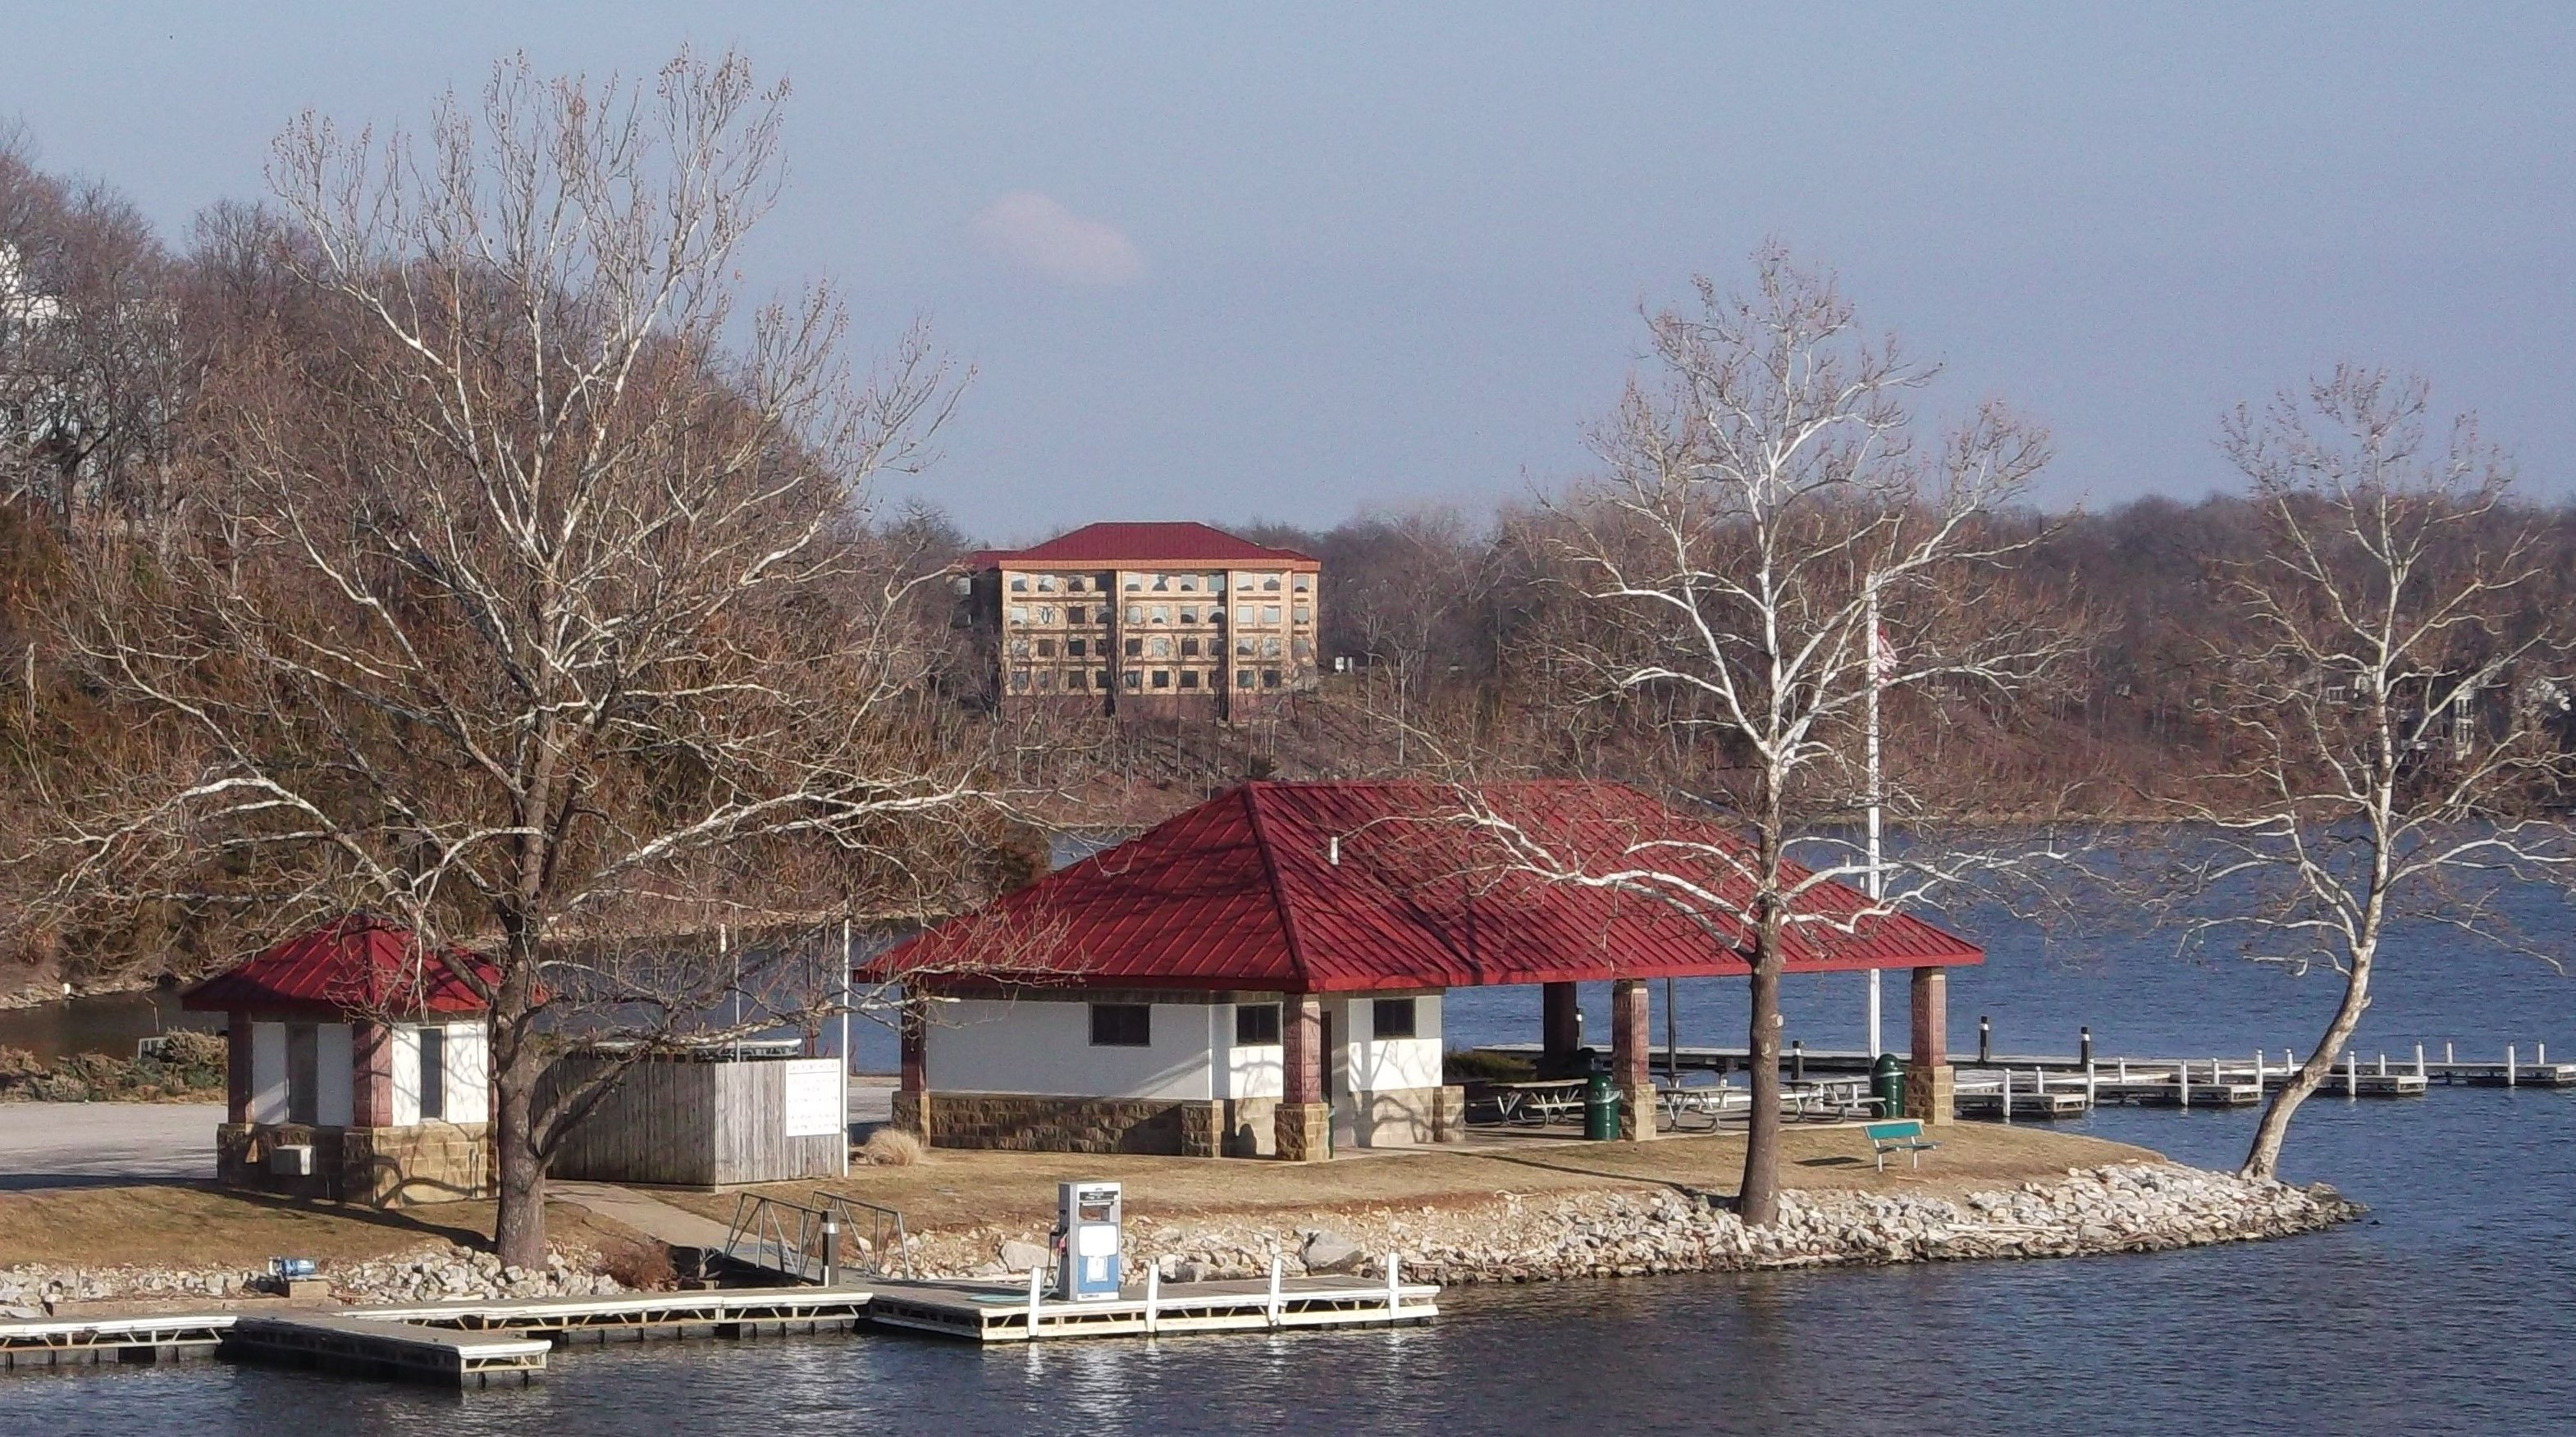 Lake Saint Louis boathouse